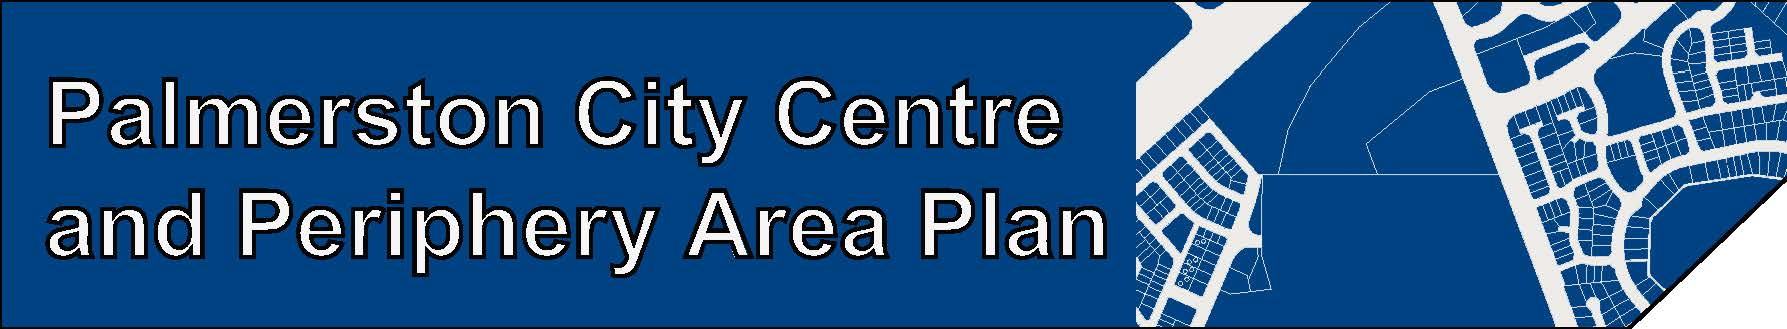 Web banner - Palmerston City Centre and Periphery Area Plan